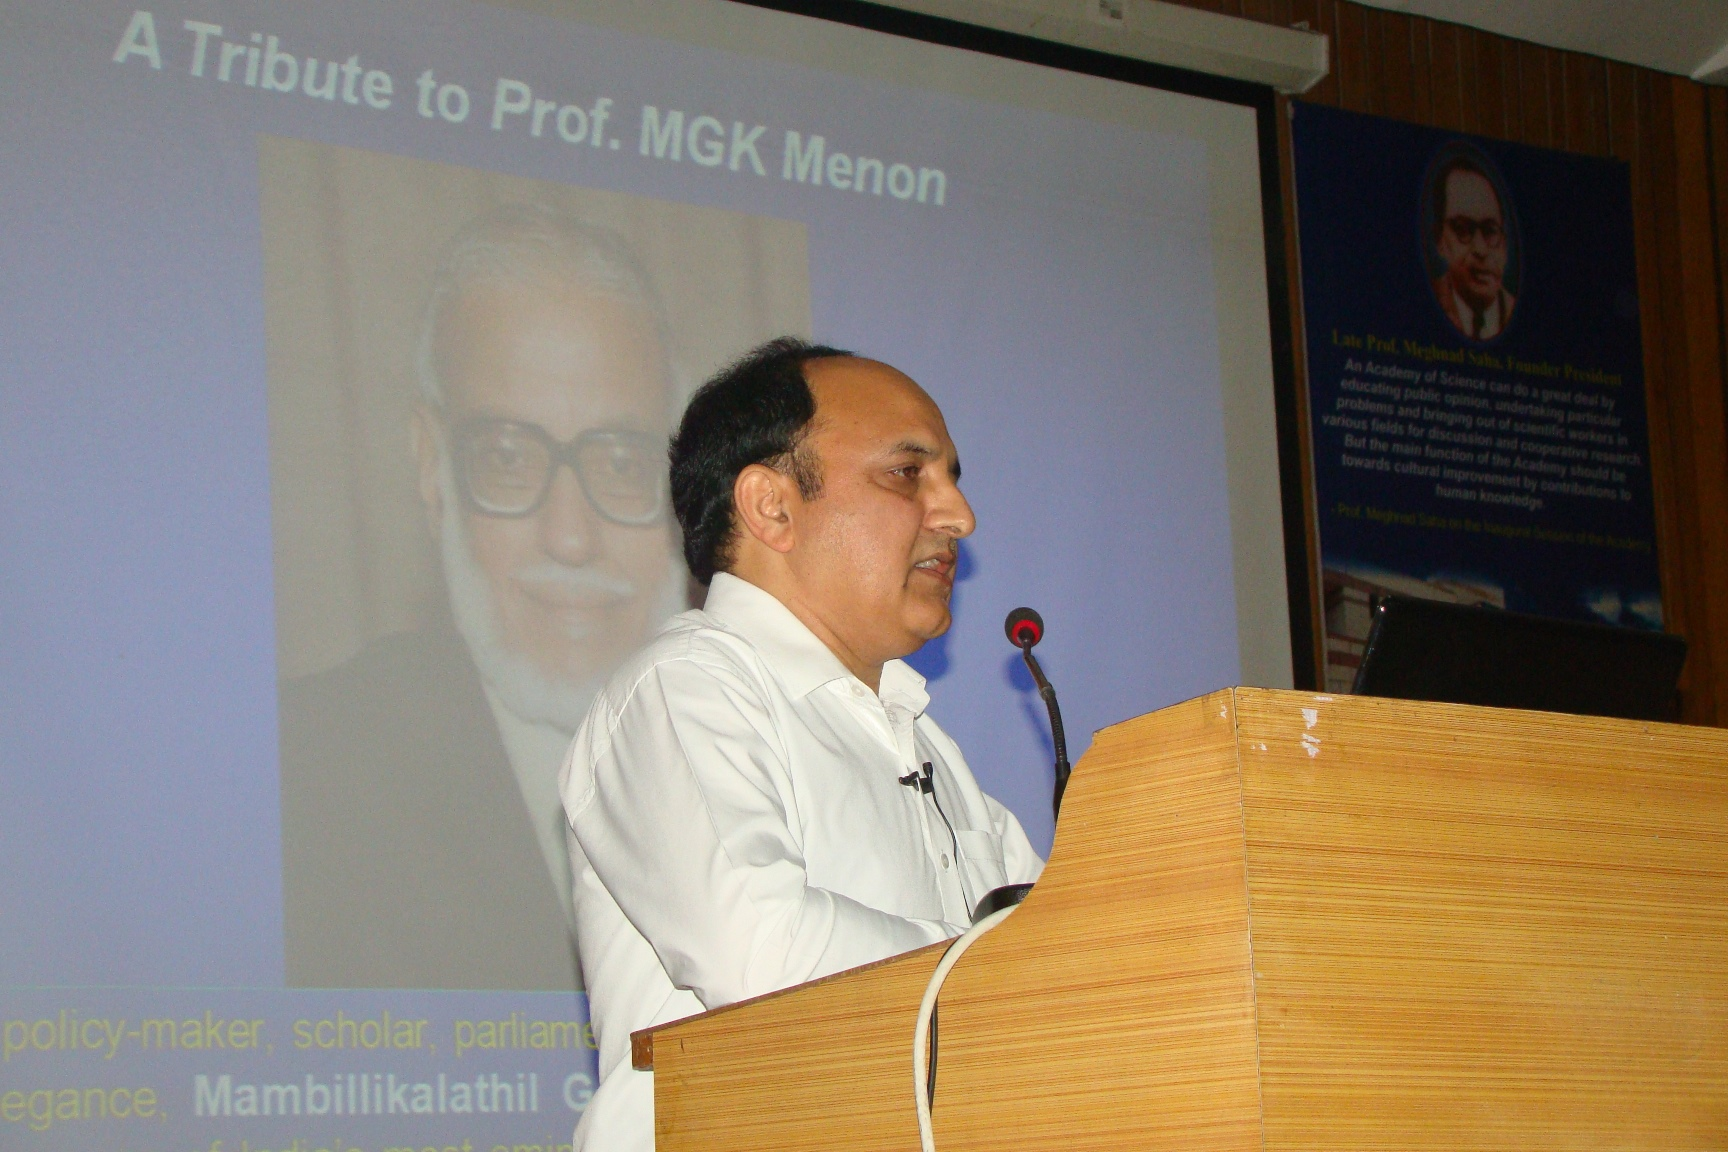 Professor MGK Menon Lecture Award to Dr. T.R. Sharma